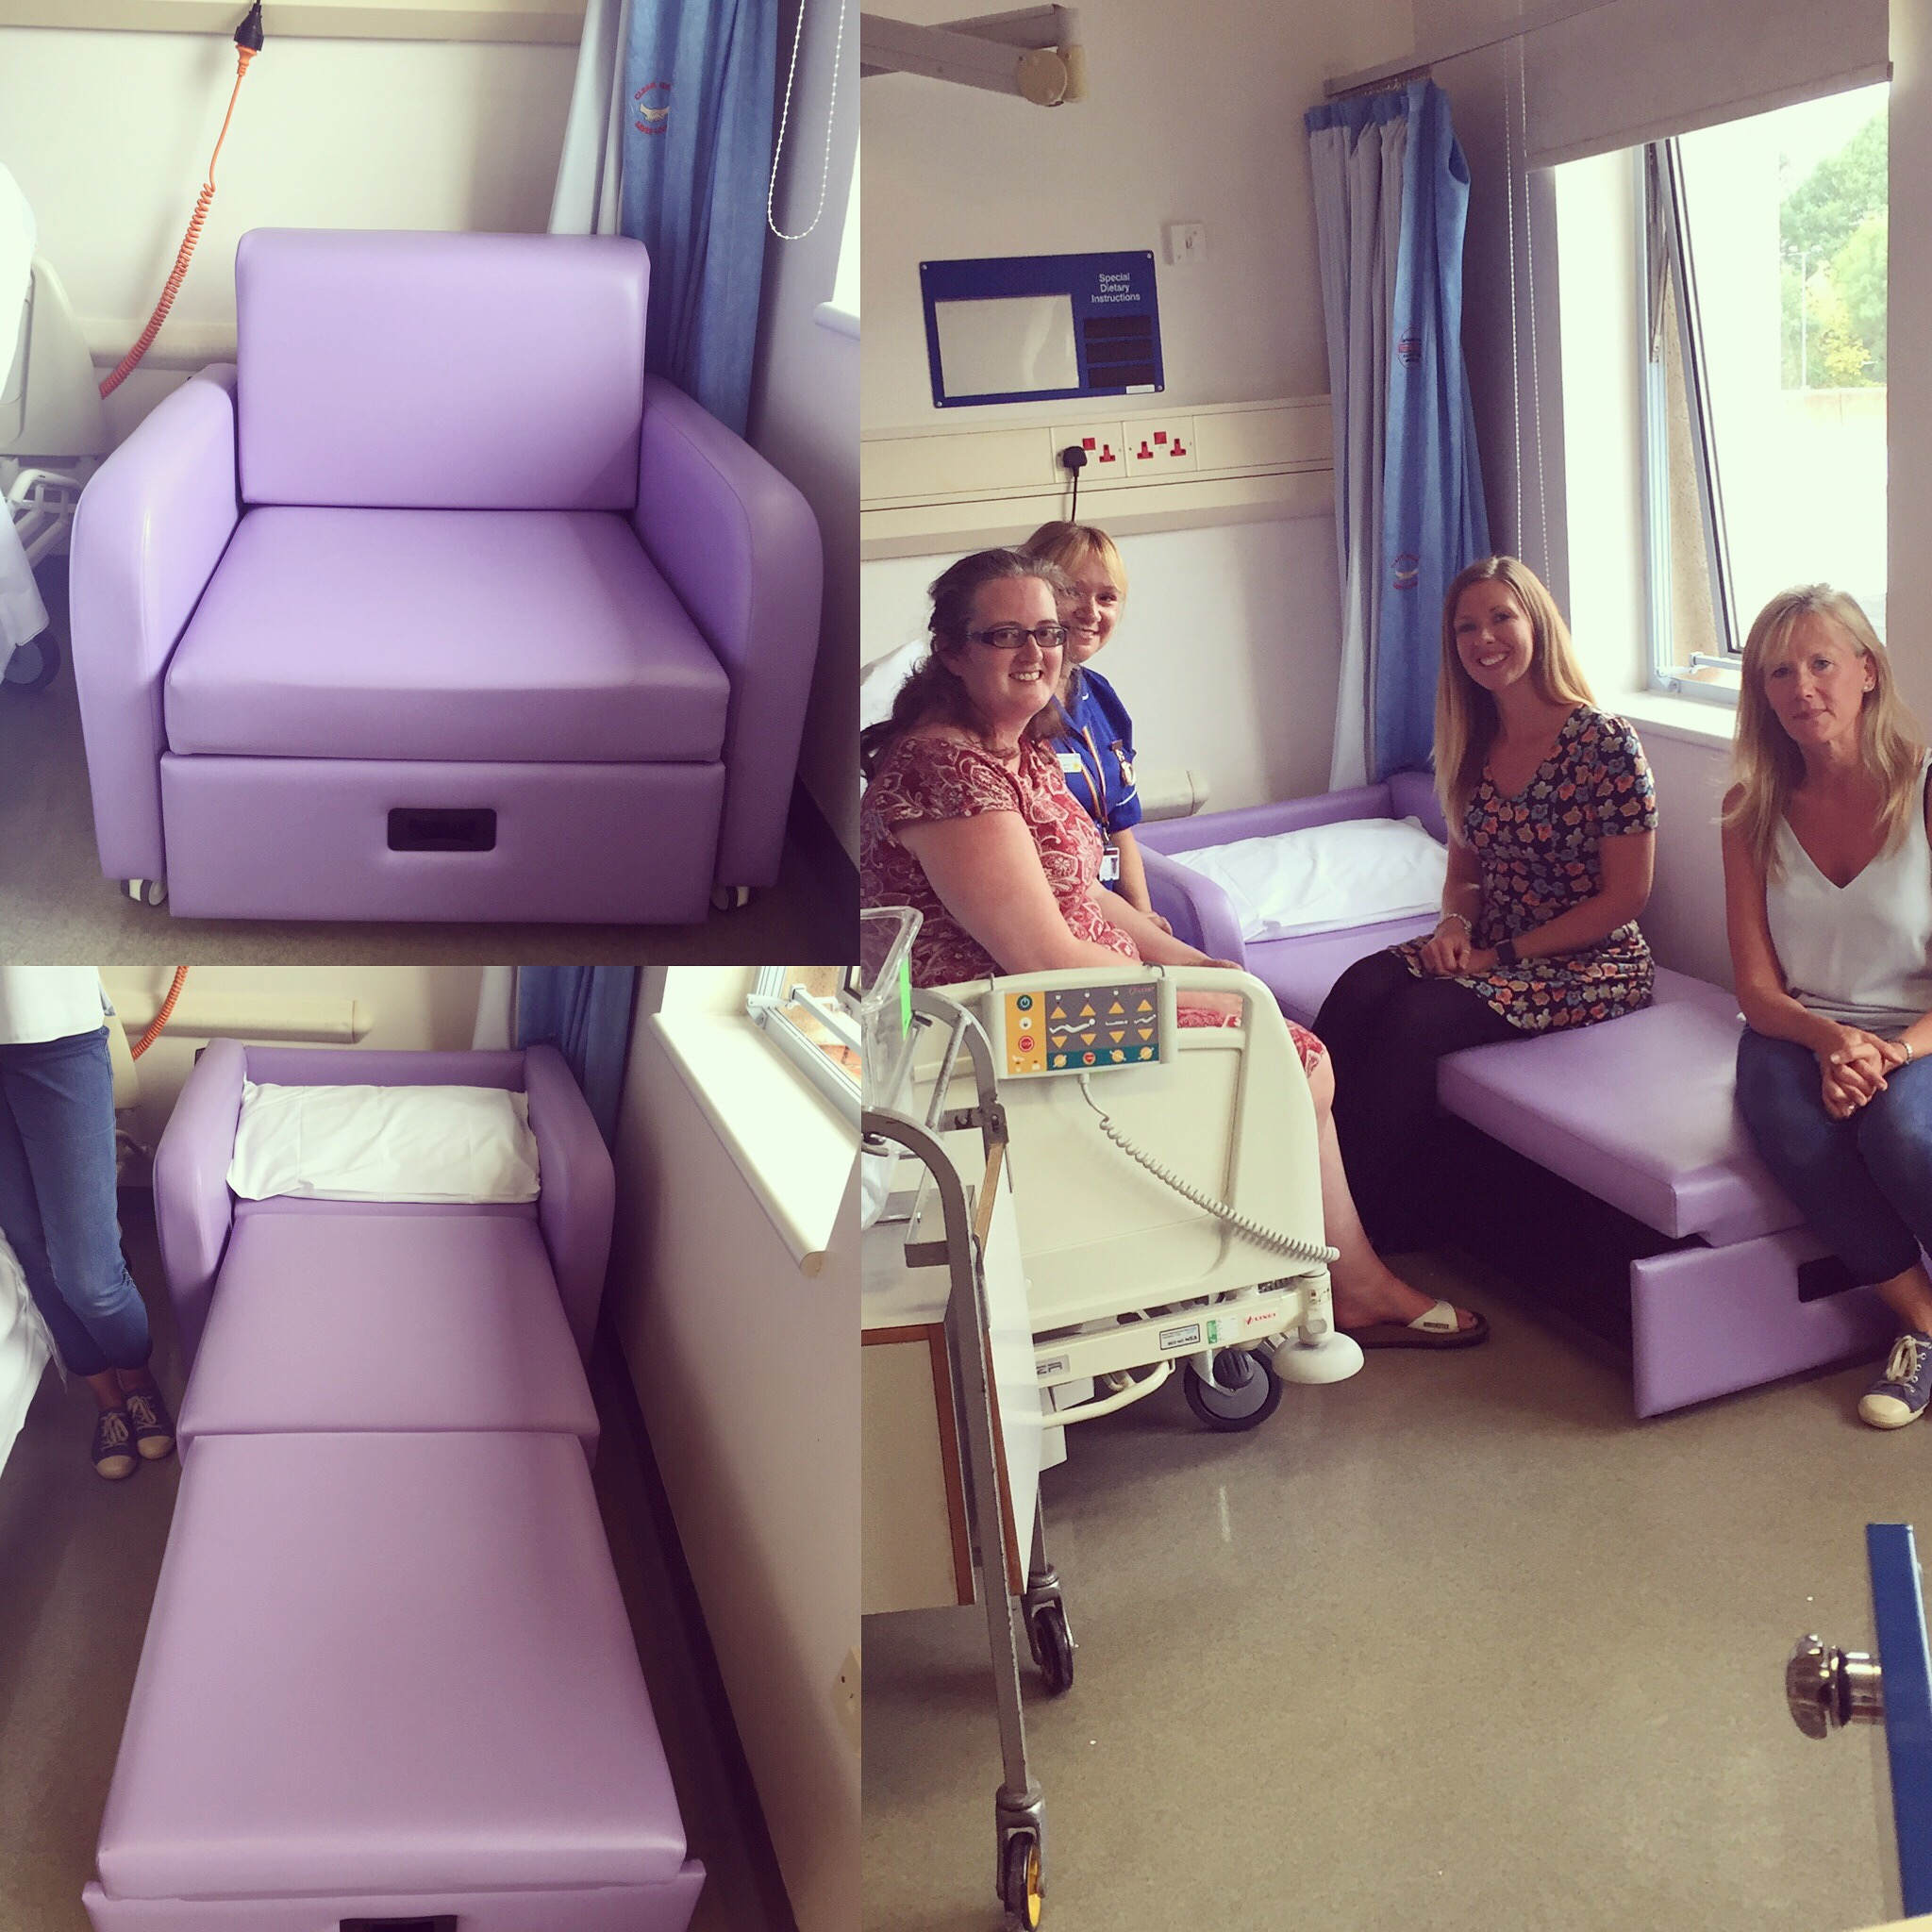 hospital chairs that convert to beds cloud nine chair new foldout arrives at warwick take it